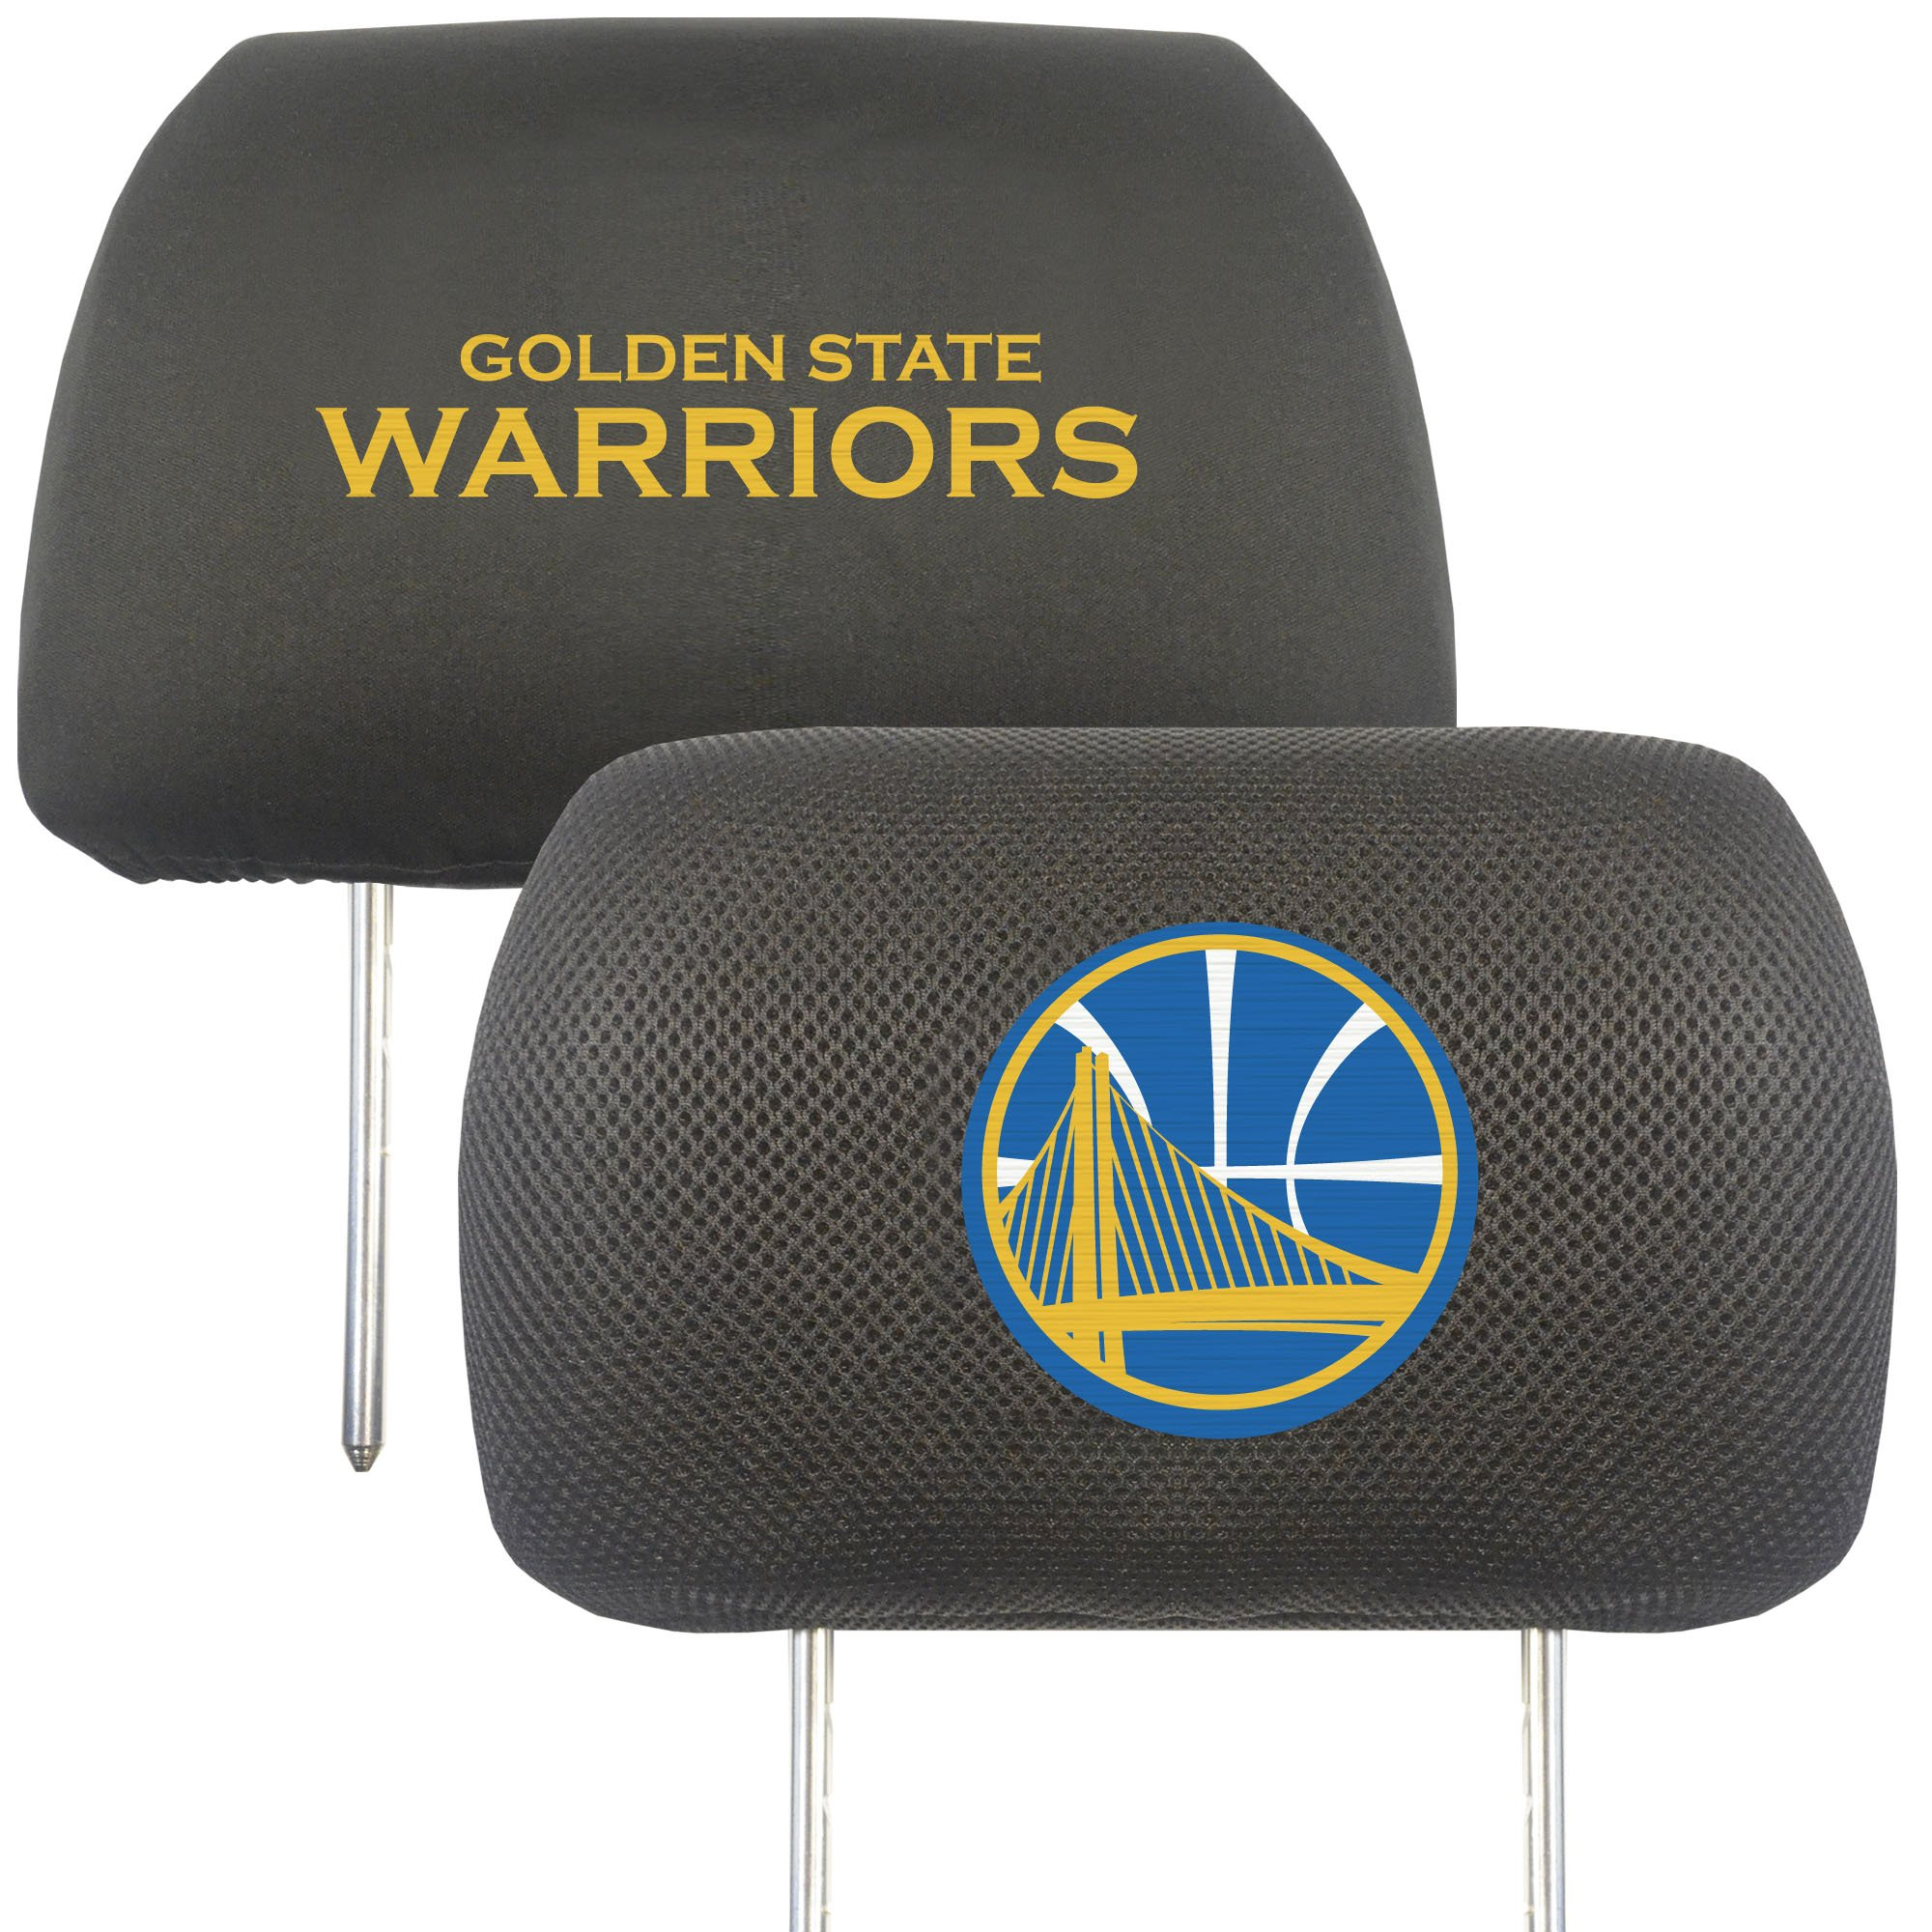 Fanmats 20323 NBA - Golden State Warriors Head Rest Cover, Team Color, 10''x13''